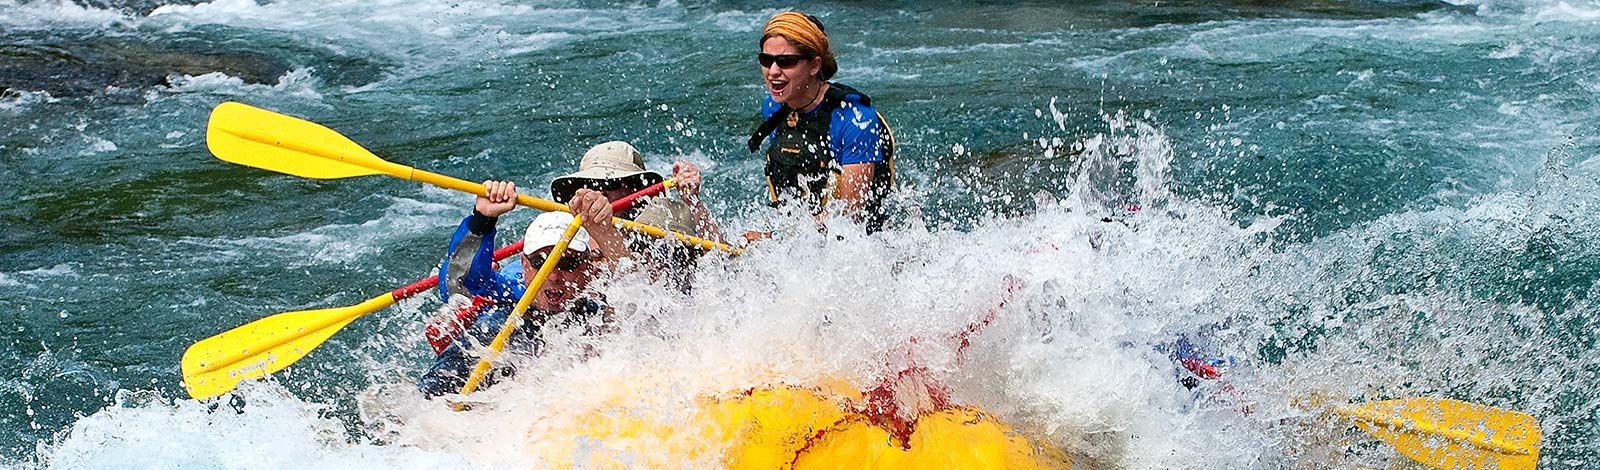 Rafting the middle fork of the Flathead River